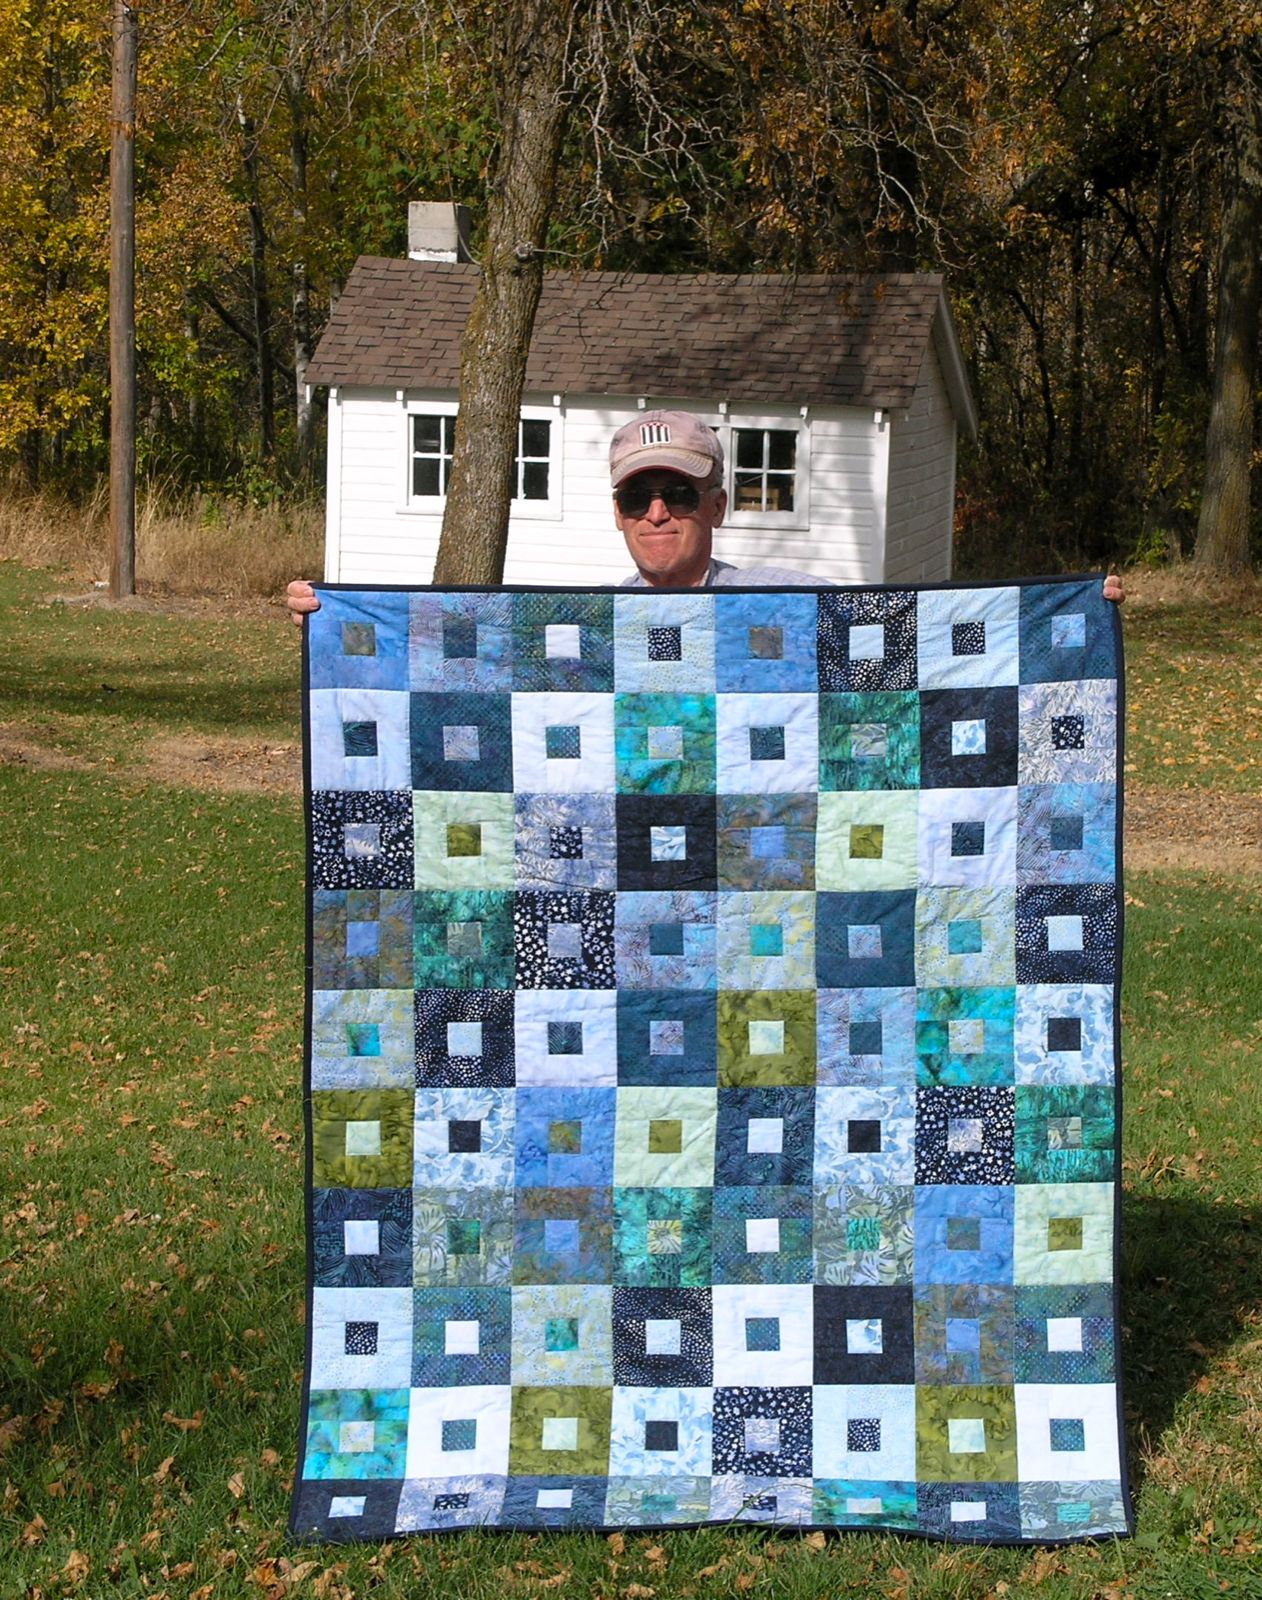 Becky S Place Batik Jelly Roll Quilt